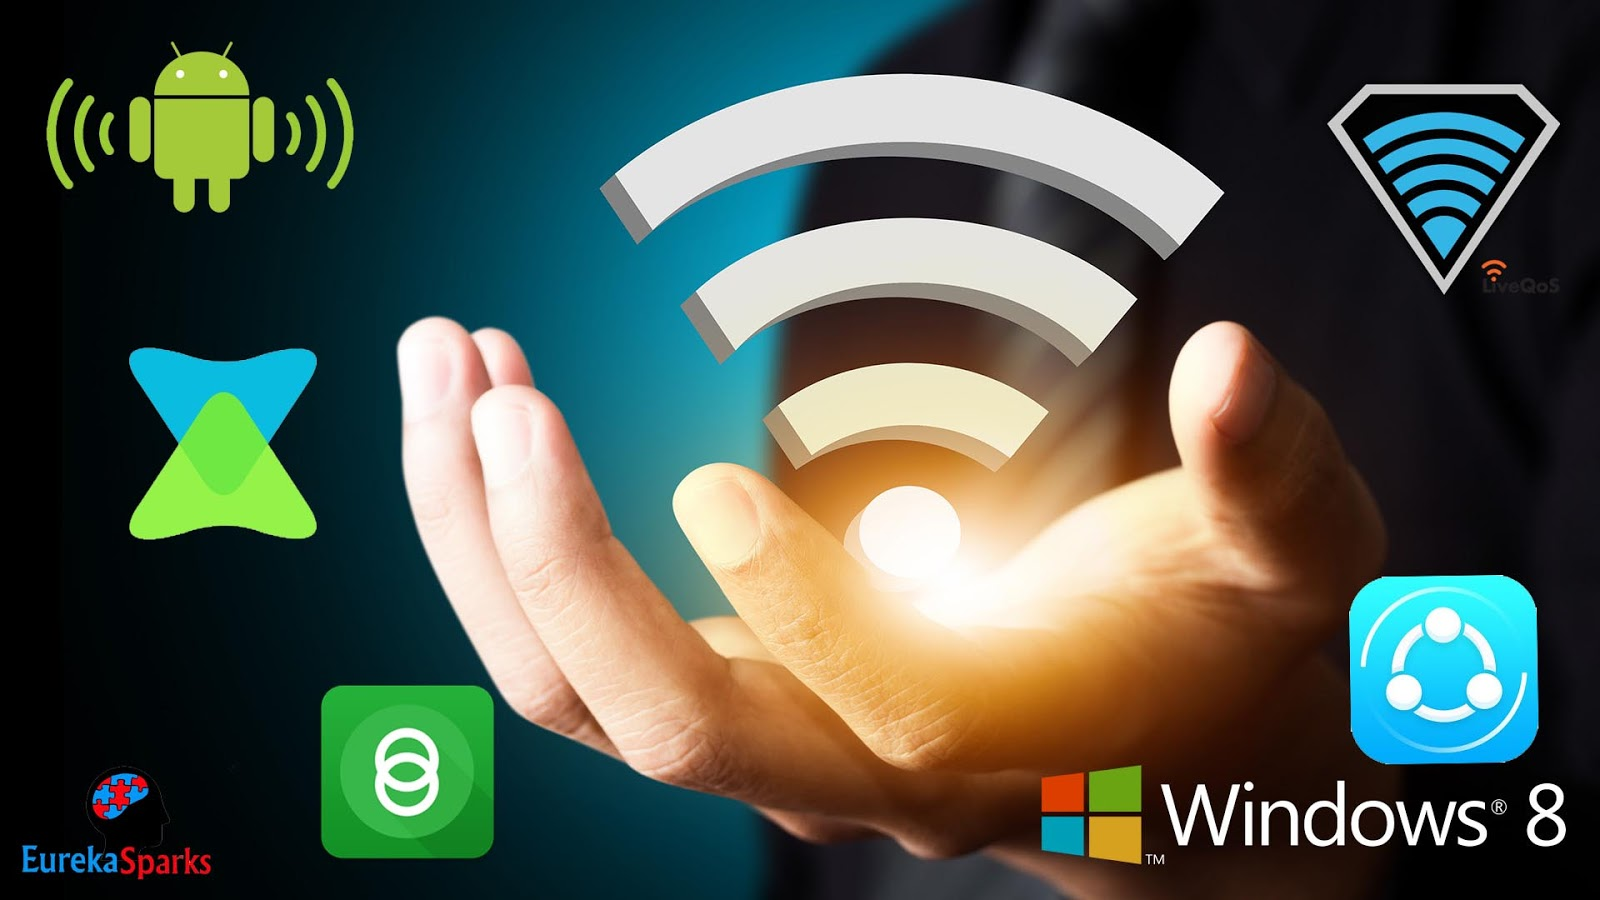 Best Android Apps to Transfer Files With Wi-Fi Direct - Eureka Sparks